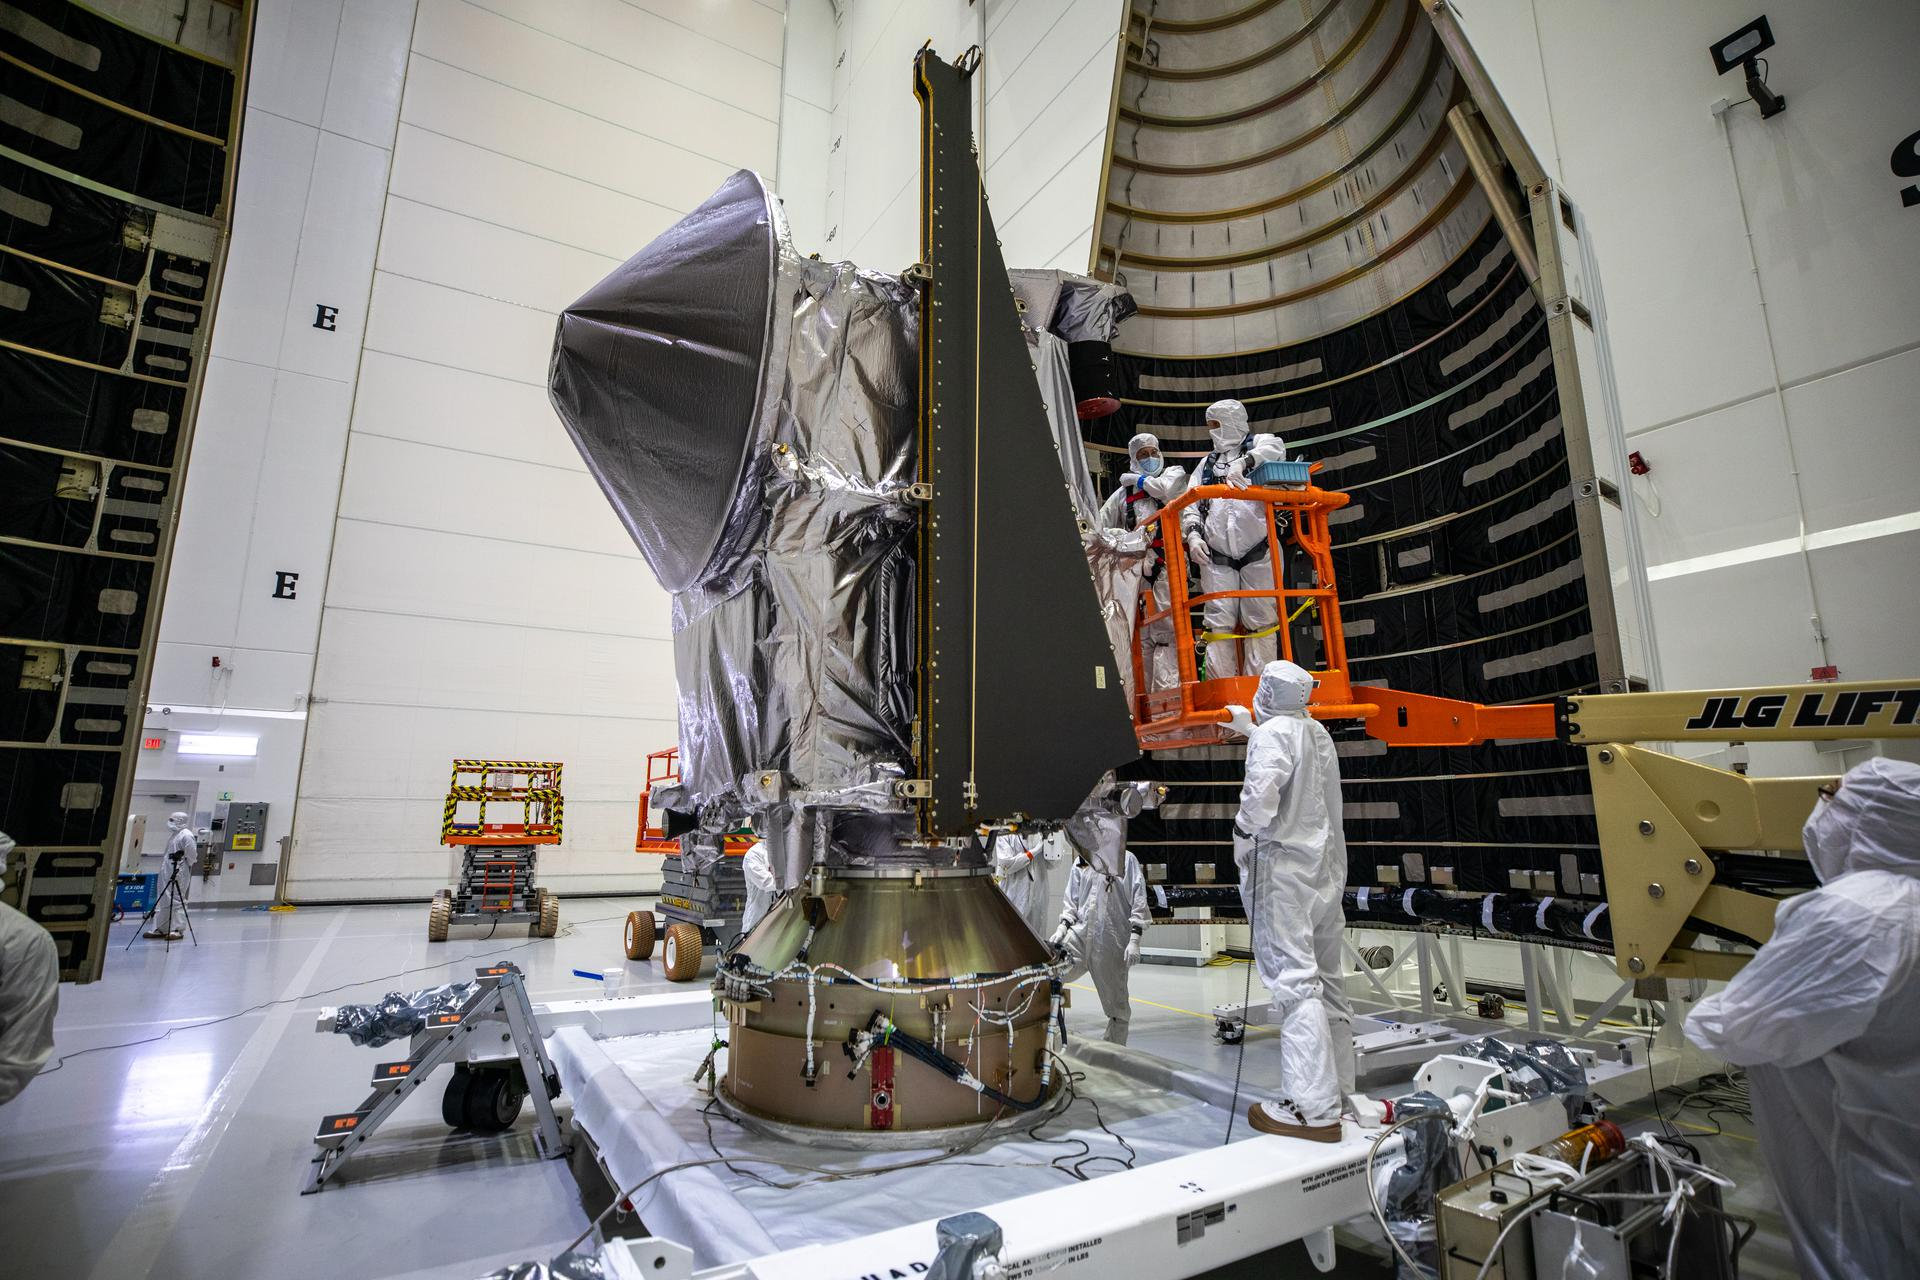 Workers inside the Astrotech Space Operations Facility in Titusville, Florida, move the first half of the United Launch Alliance (ULA) payload fairing toward NASA's Lucy spacecraft on Sept. 30, 2021.